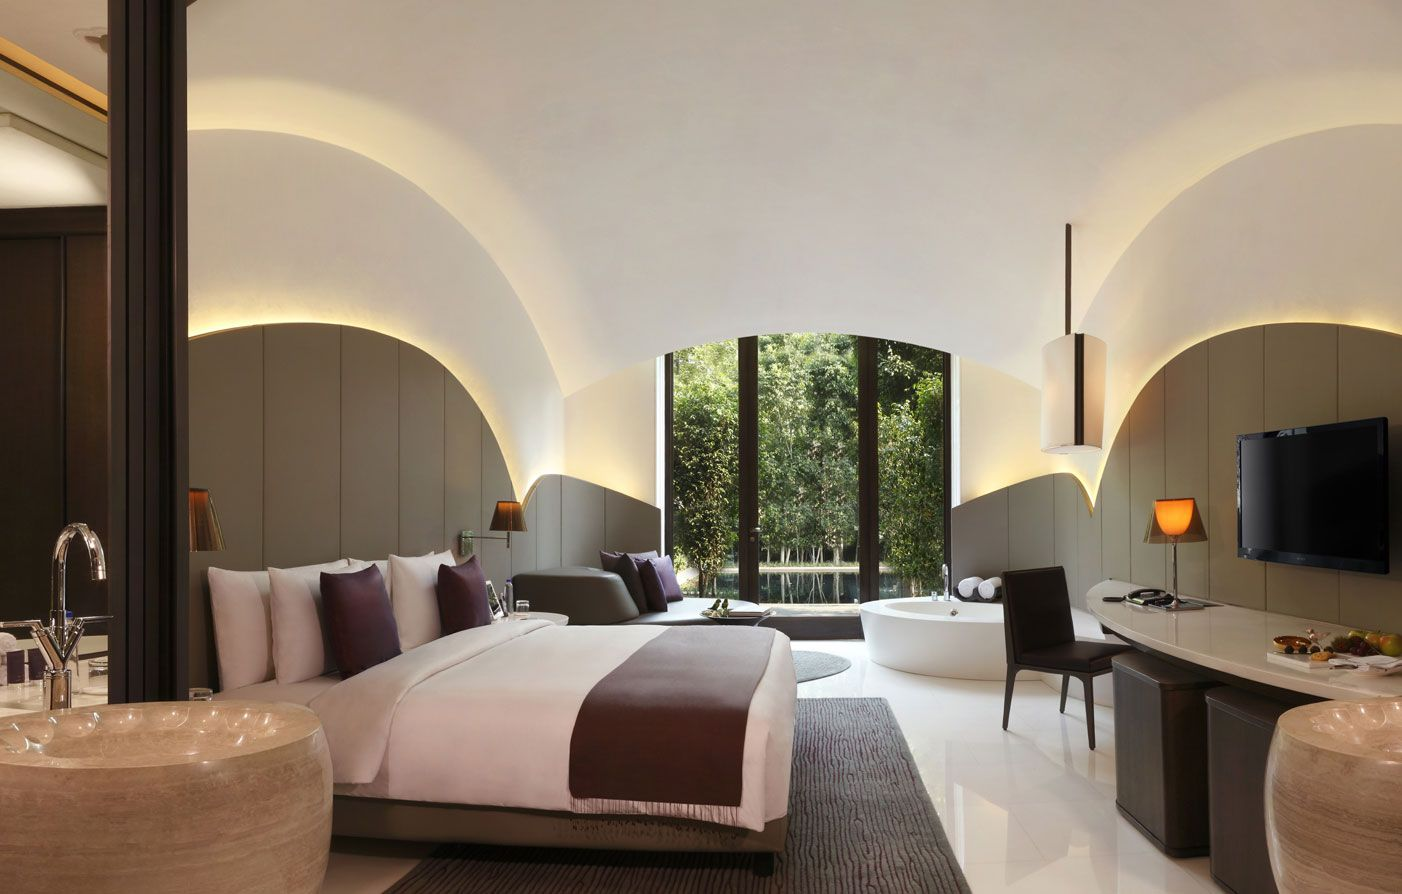 The Roseate A Luxury Resort In New Delhi Narrates A Clear Visual